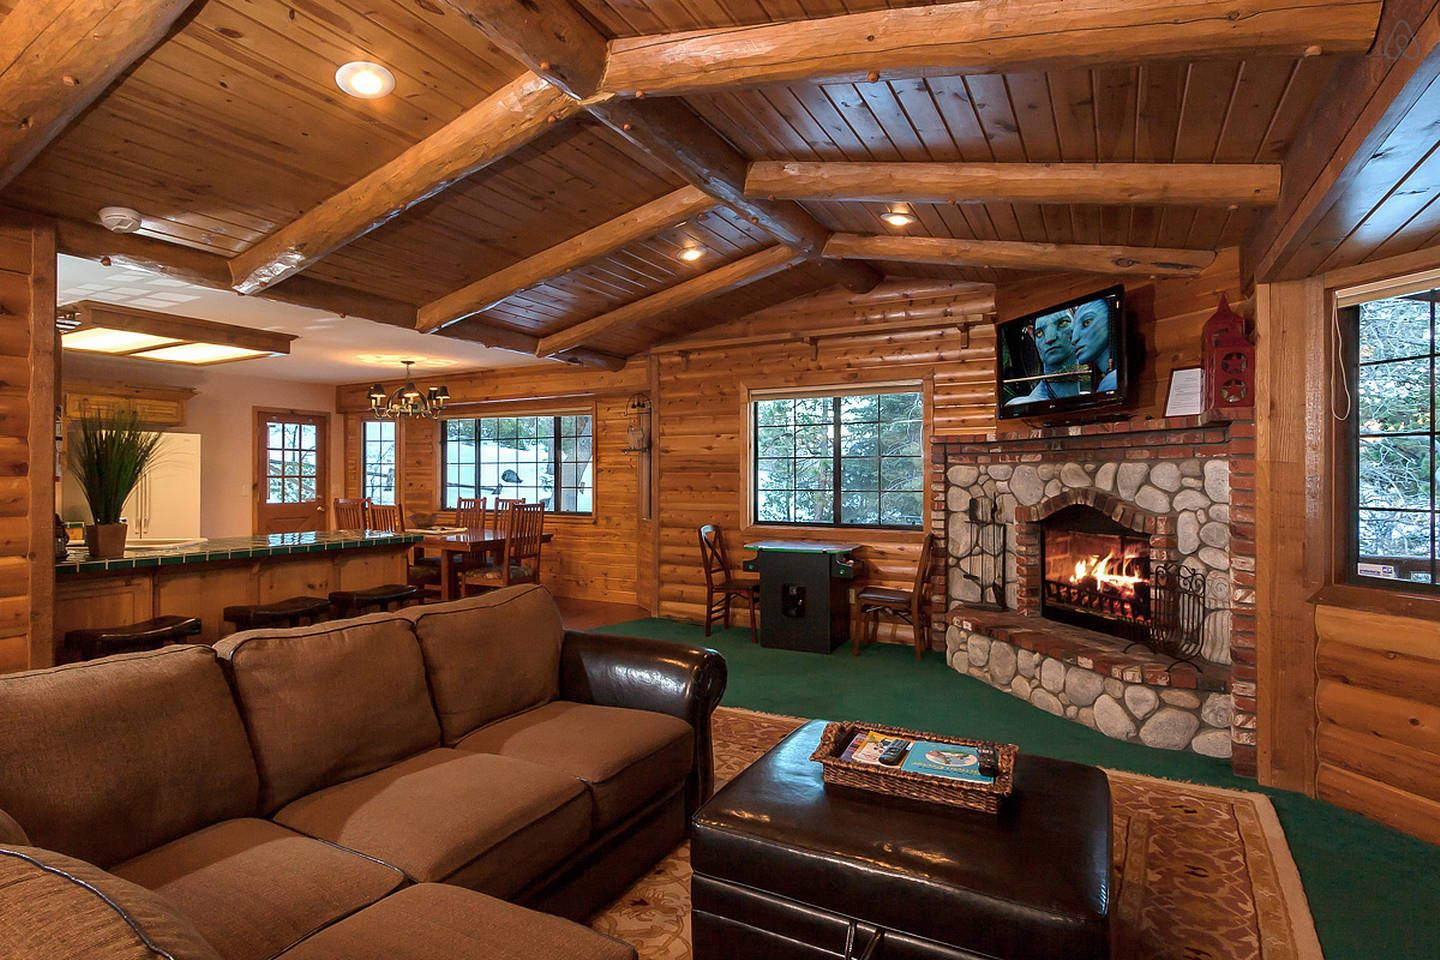 Tree Top Beauty Steps to Slopes. - vacation rental in Big Bear Lake, California. View more: #BigBearLakeCaliforniaVacationRentals